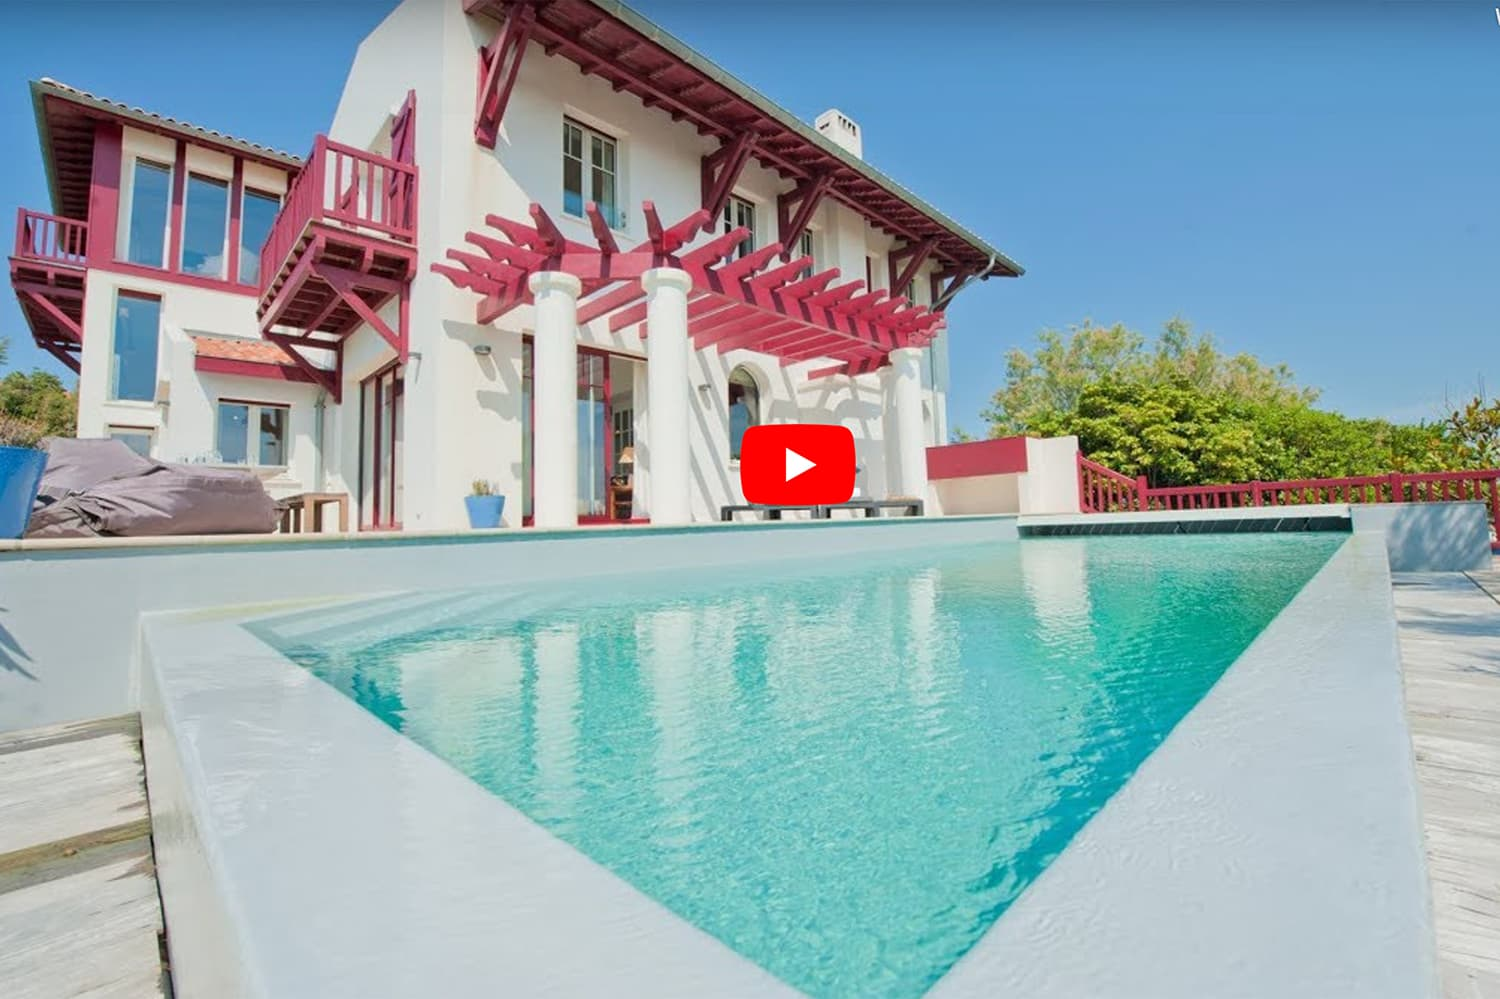 Beachfront holiday villa in Biarritz